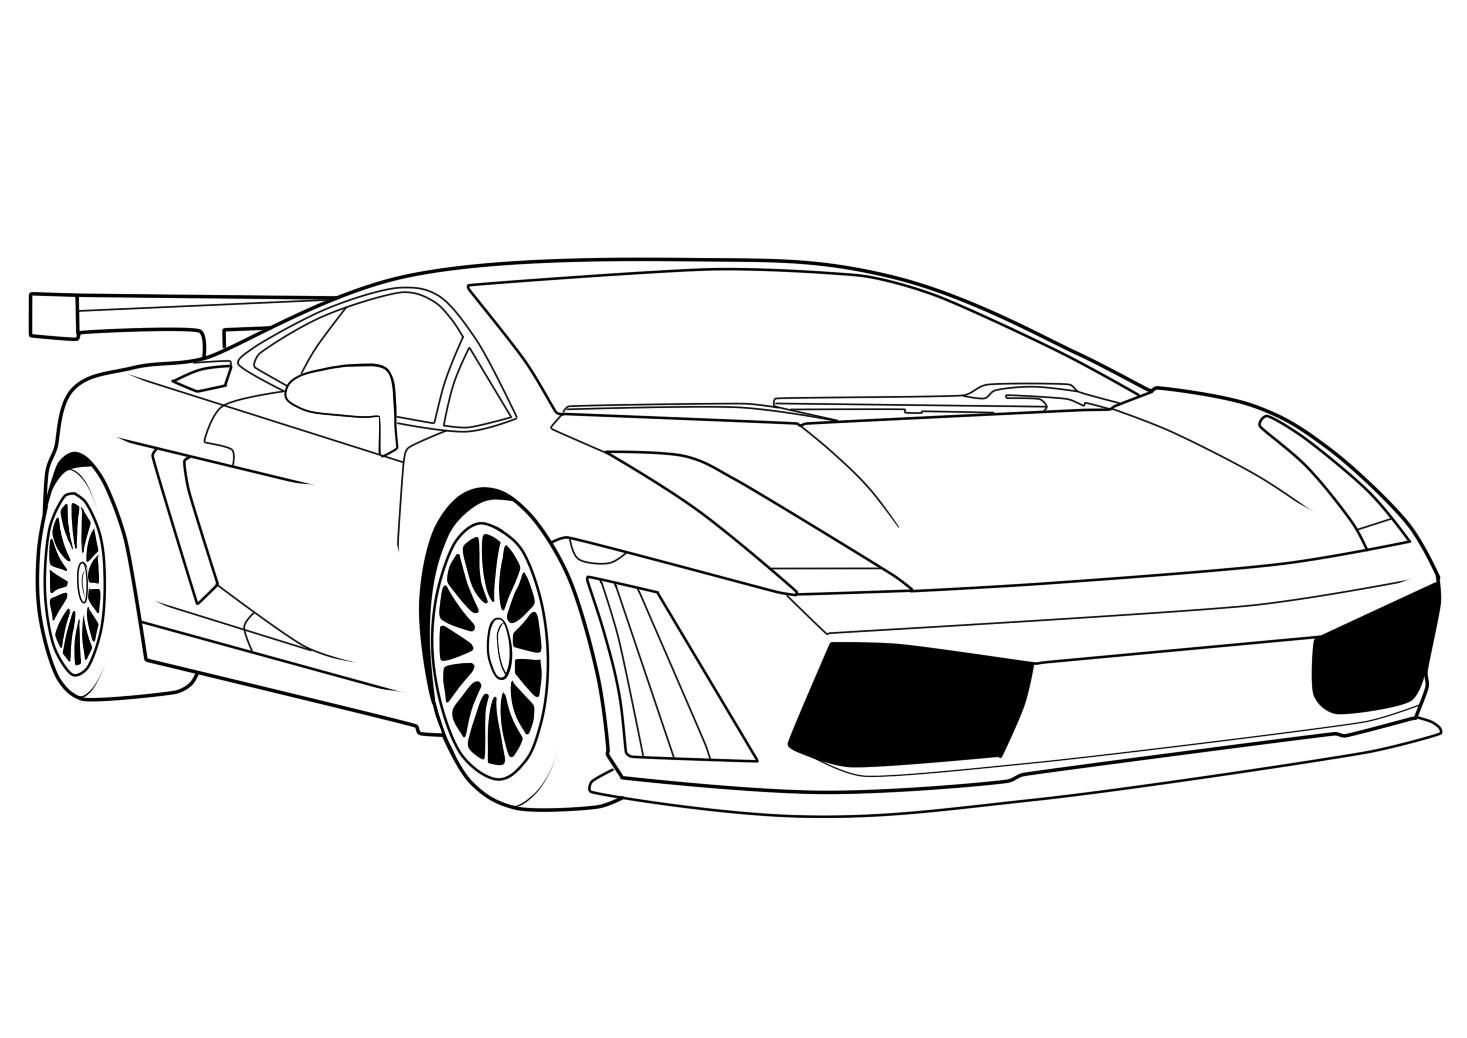 coloring pages of cool cars super car toyota sequoia coloring page cool car printable cars of cool coloring pages